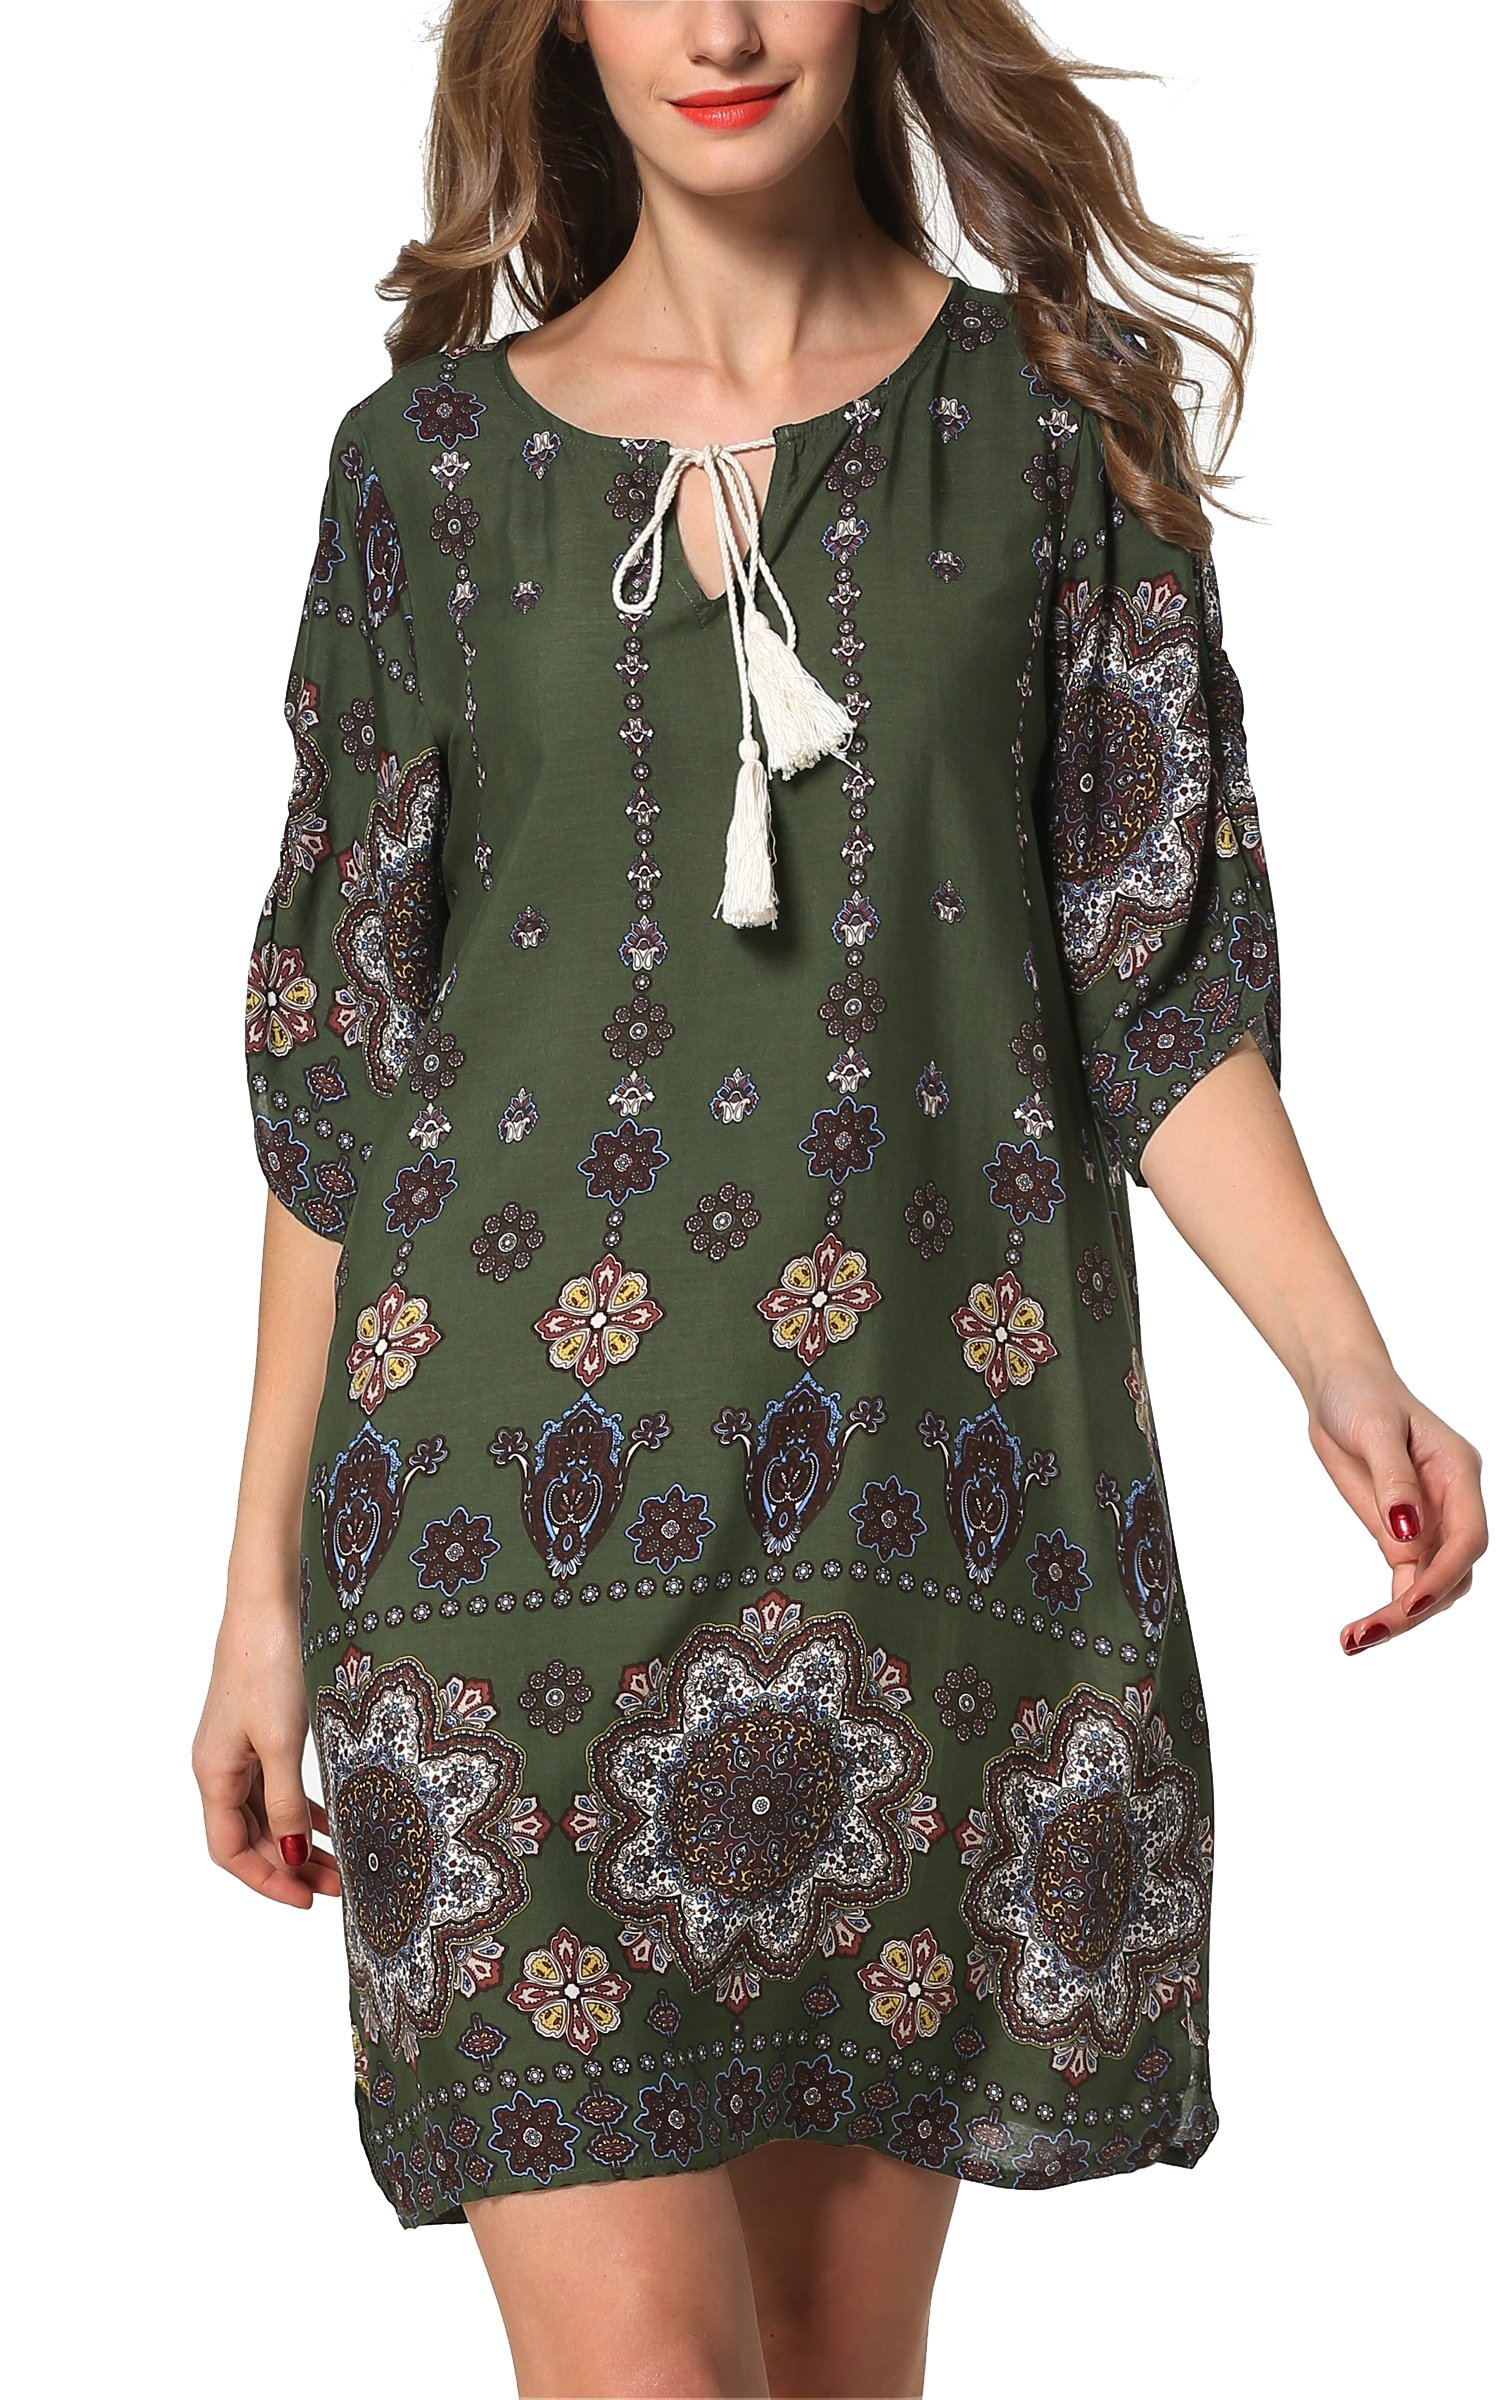 ARANEE Bohemian Neck Tie Vintage Printed Ethnic Style Summer Shift Dress